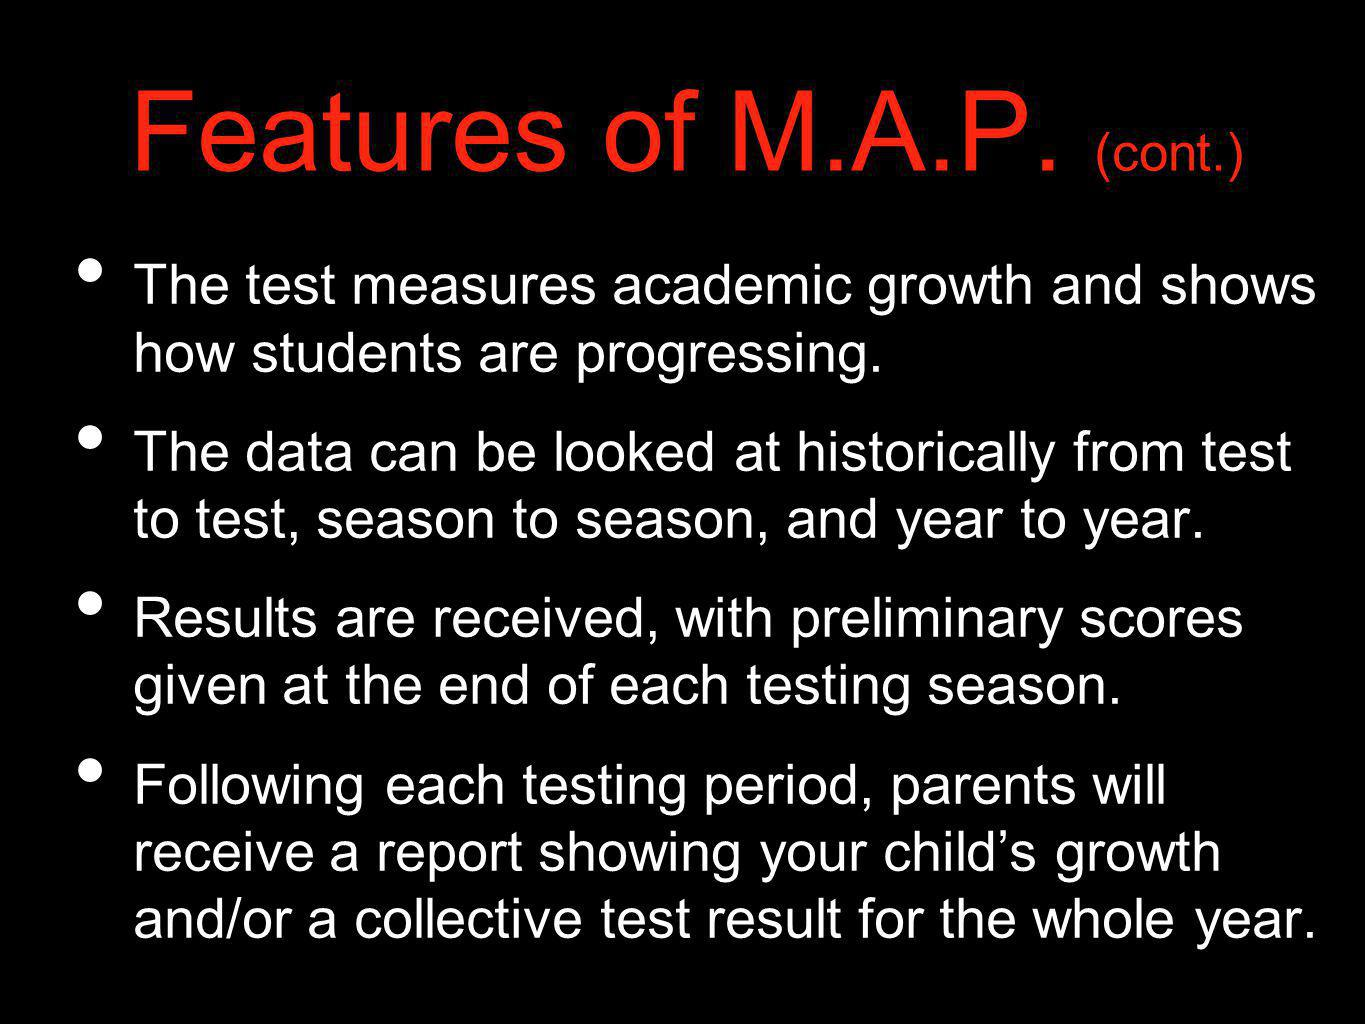 Features of M.A.P. (cont.) The test measures academic growth and shows how students are progressing.